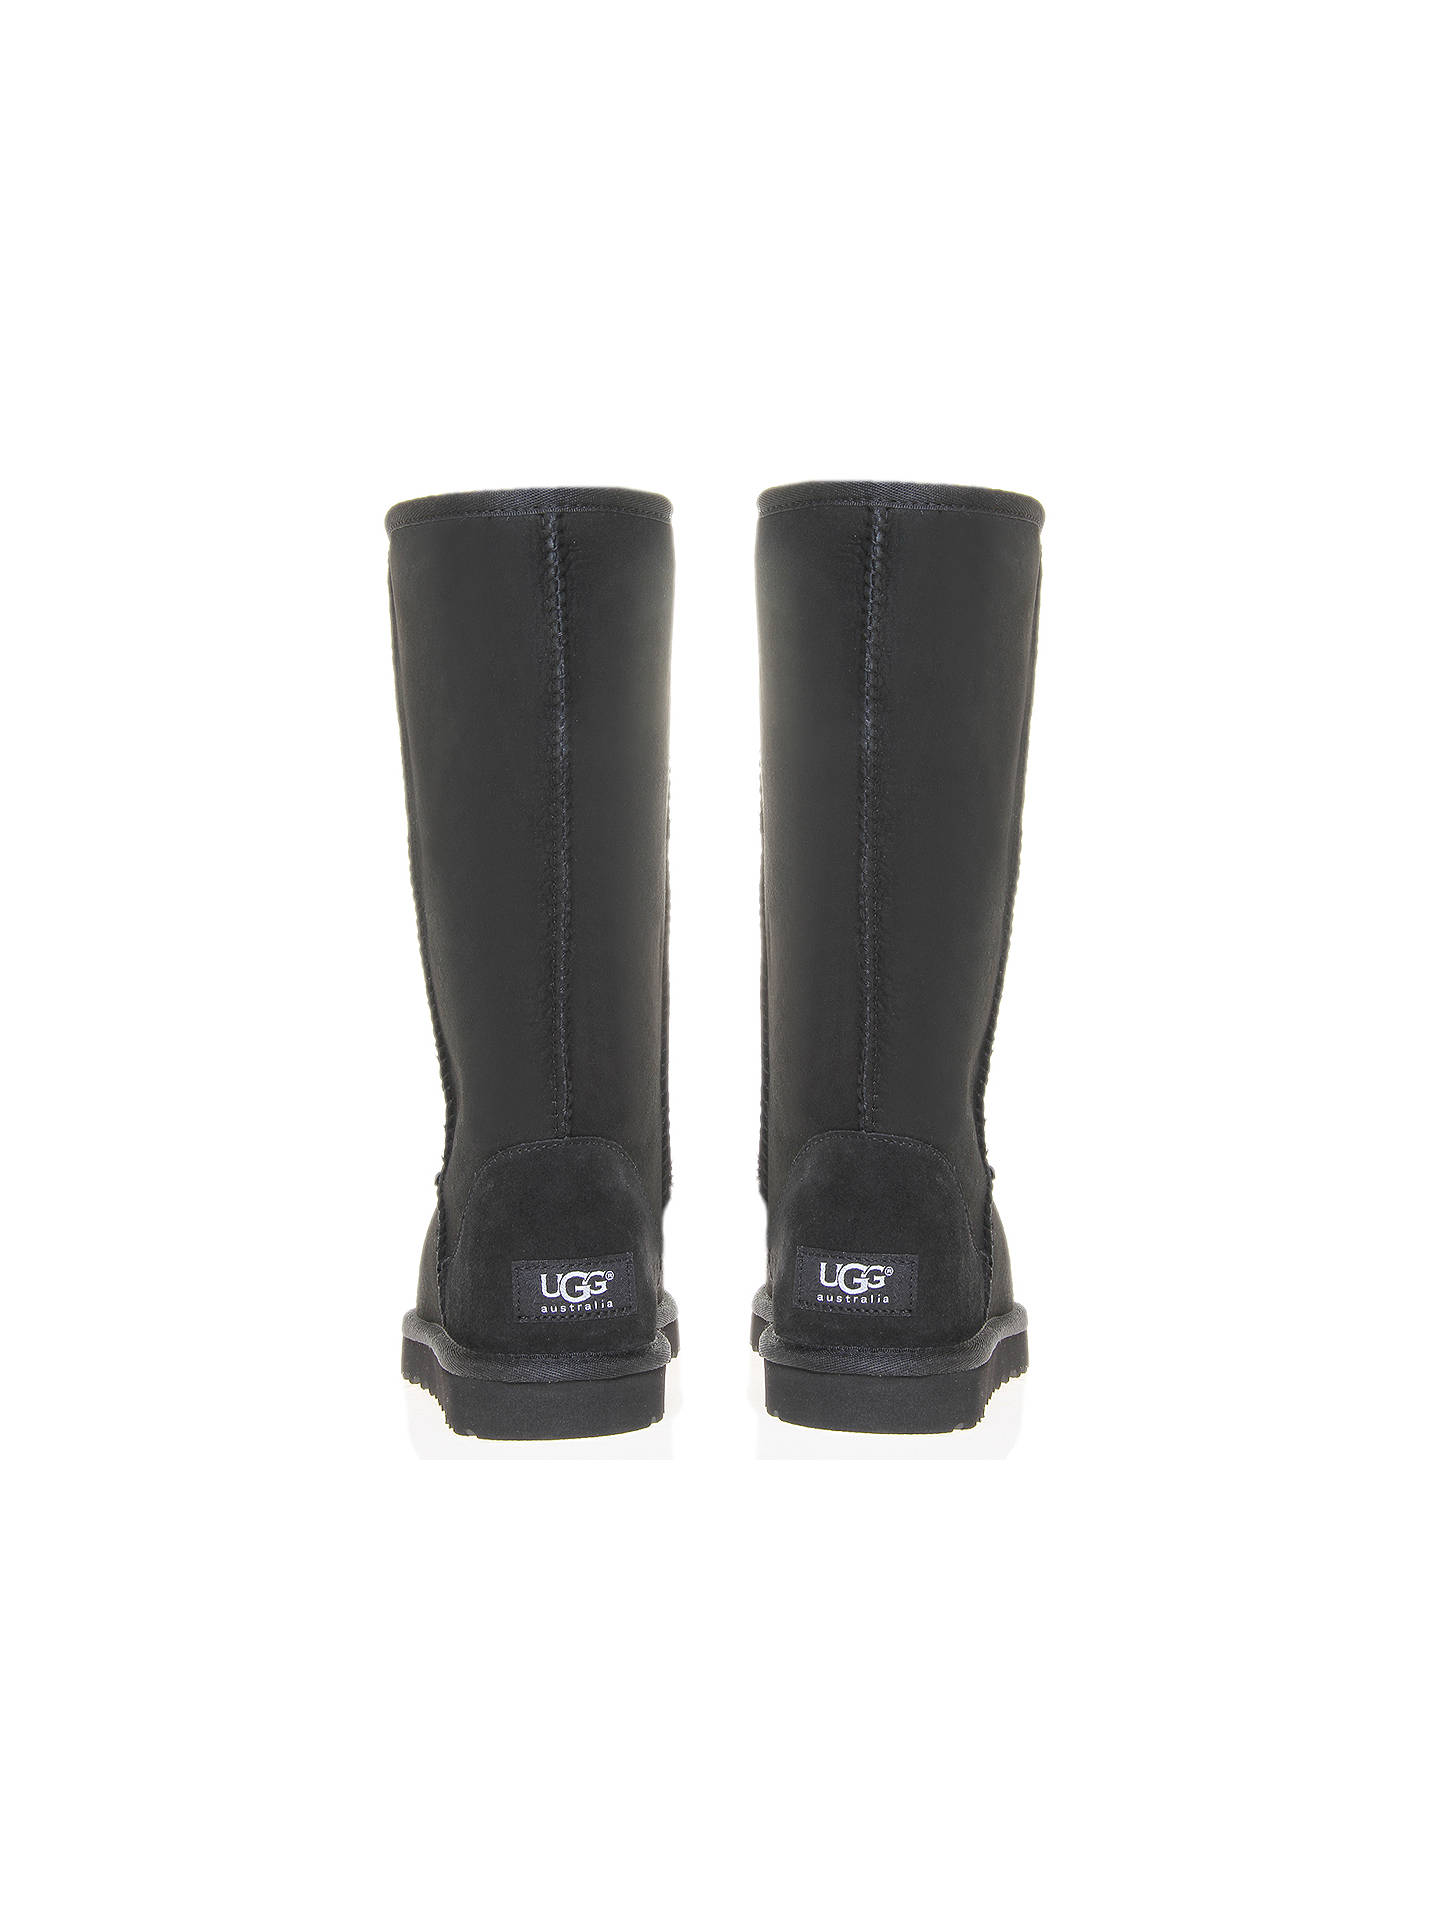 247a8c6c31f UGG Classic Tall Boots | Black at John Lewis & Partners